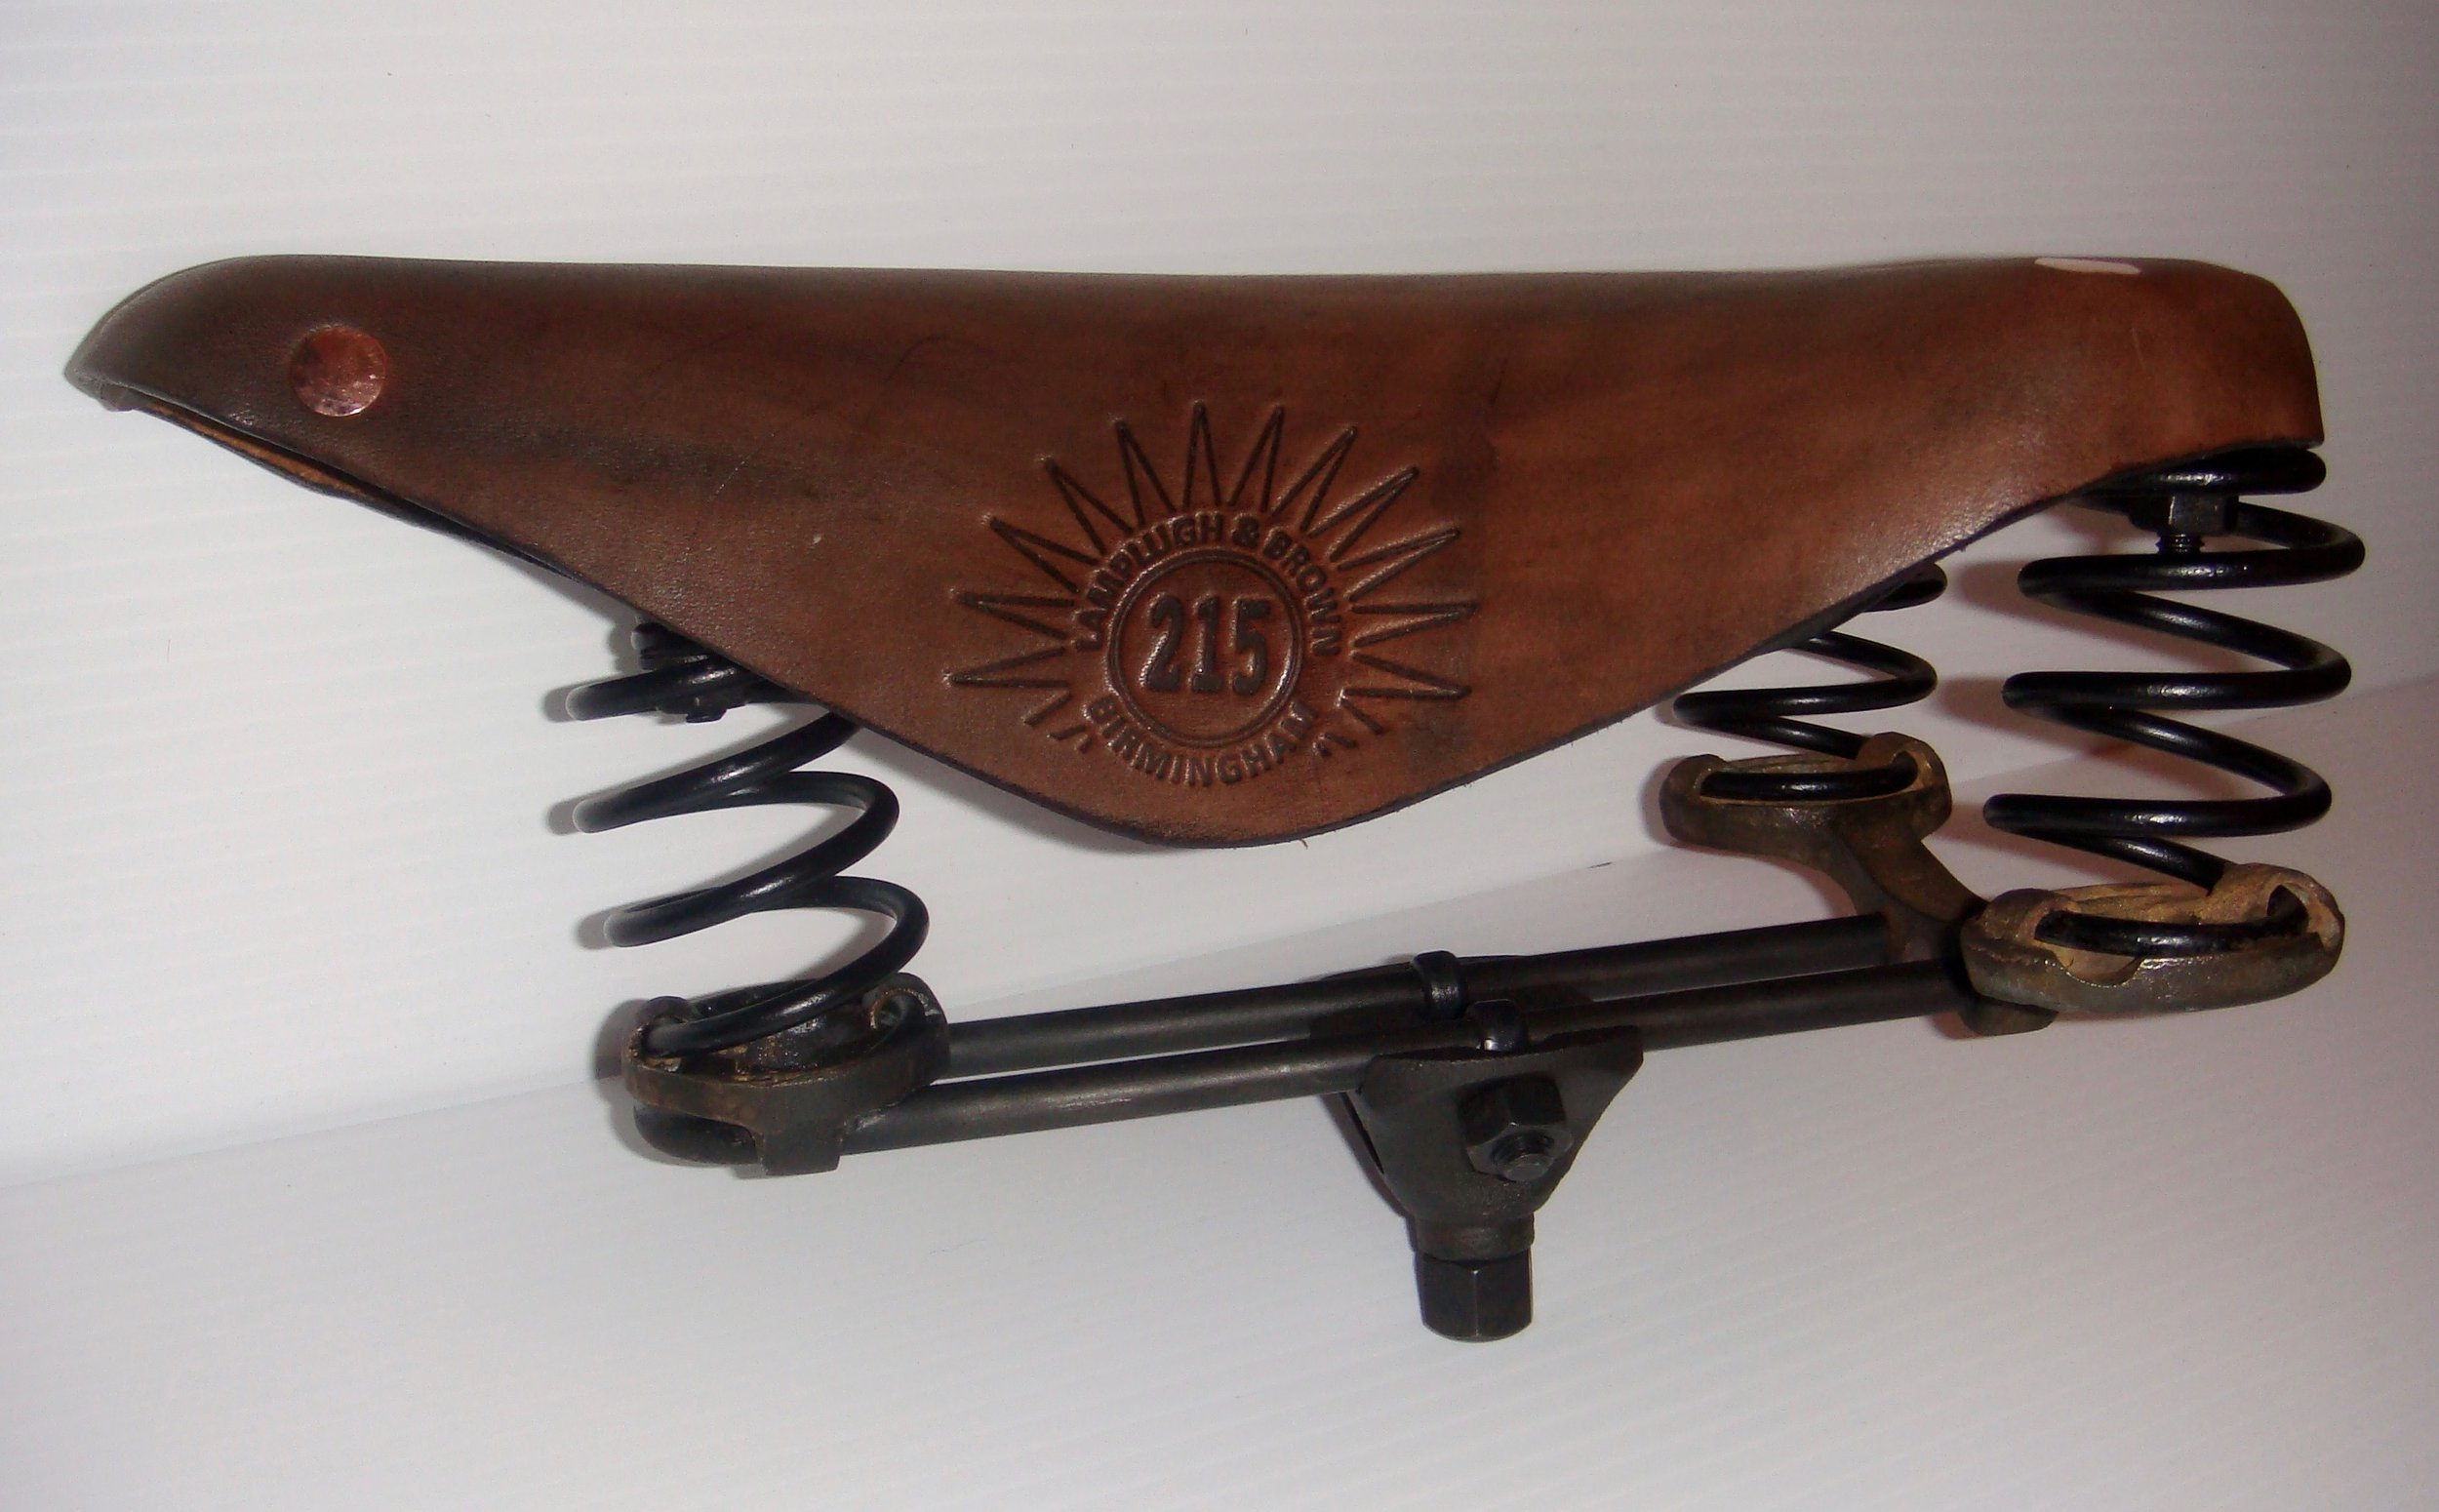 1887 to 1892 Lamplugh & Brown Model No. 215  Frame only ---- $775.00 Complete with Leather cover ---- $1225.00.